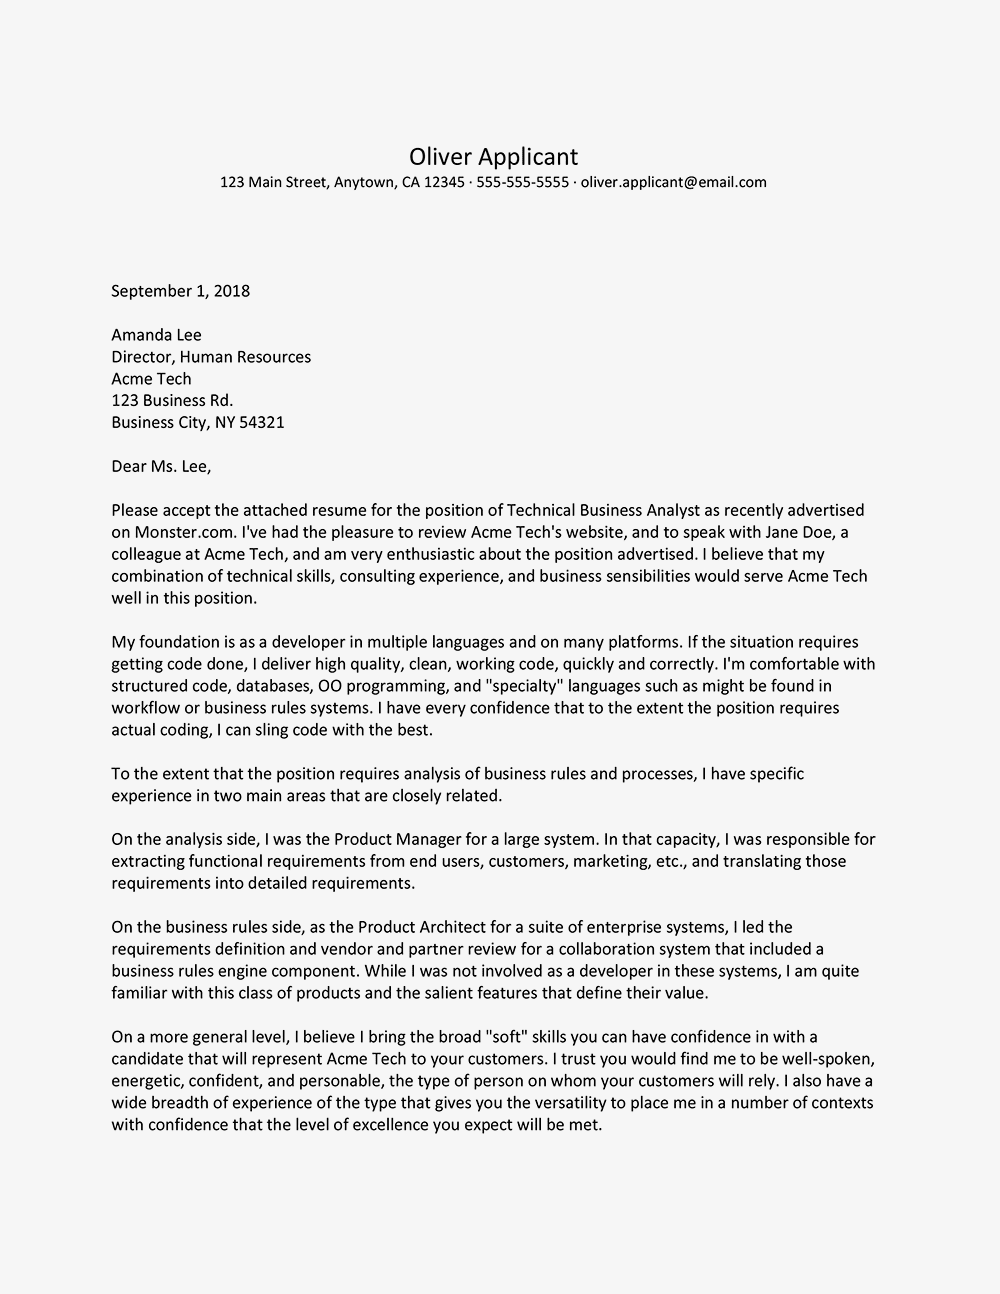 Sample Technical Cover Letter with a Referral